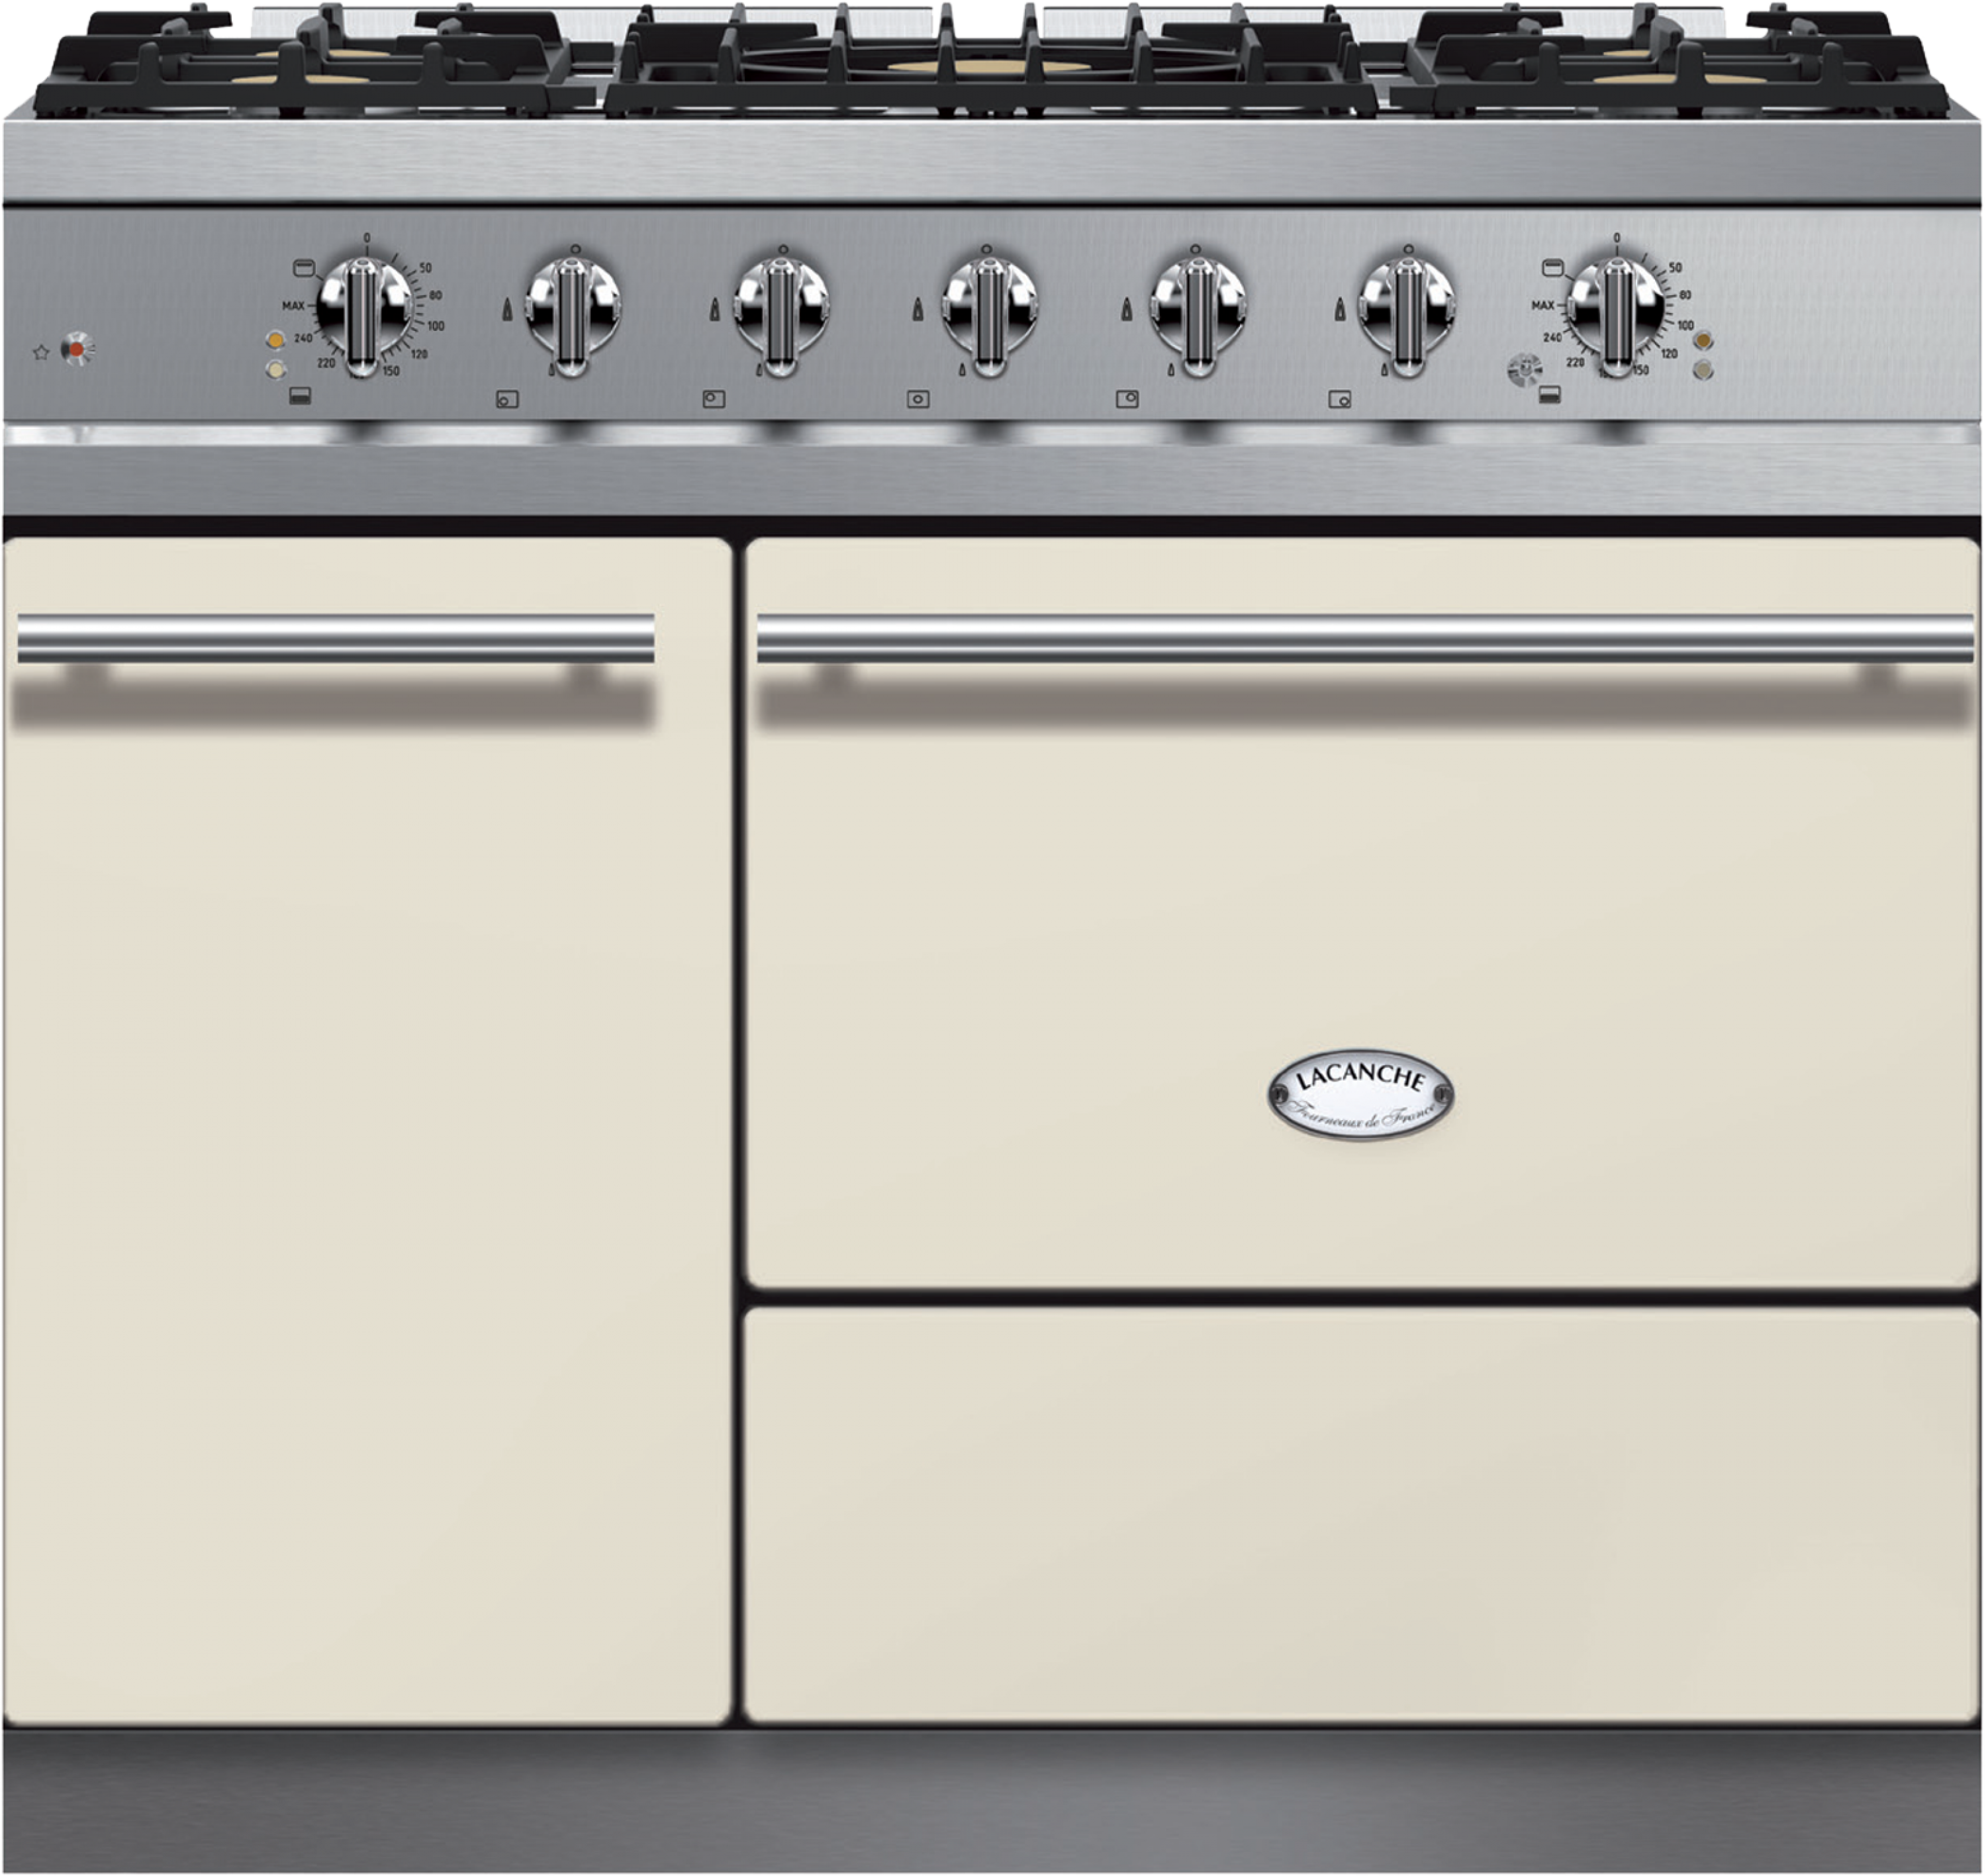 range cooker builder lacanche range cookers and accessories. Black Bedroom Furniture Sets. Home Design Ideas